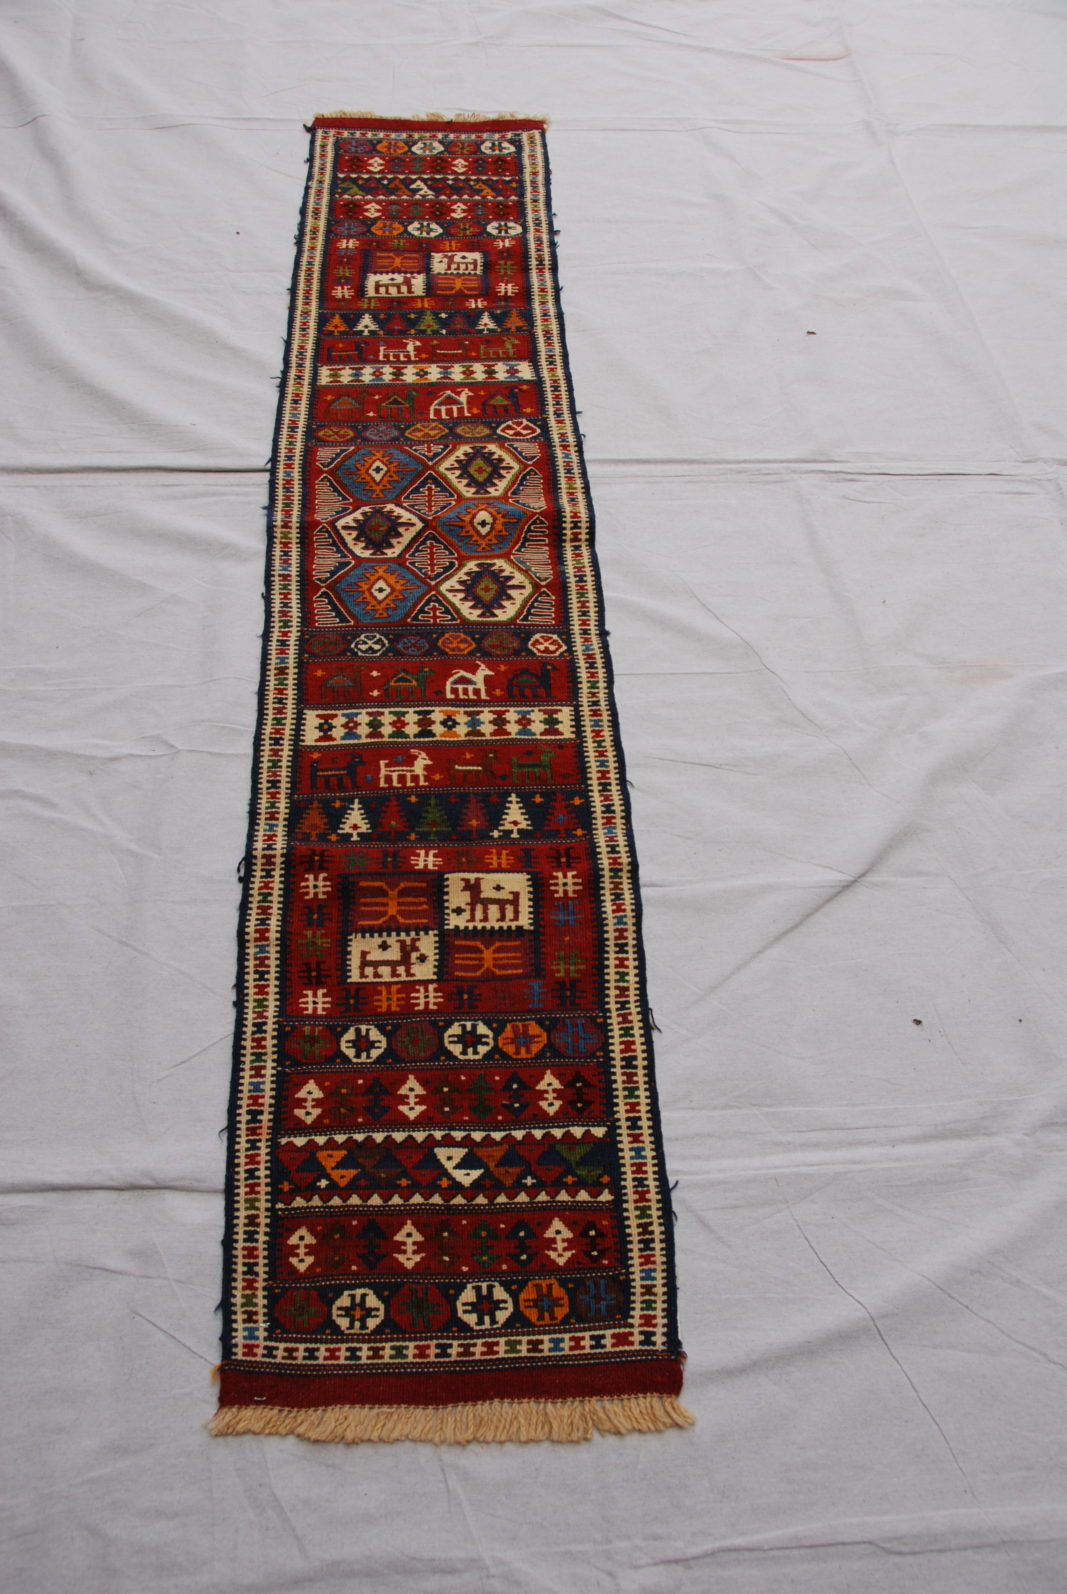 Hand woven & knotted wool on wool Soumac from Kurdish Iran, Kochan 20-30 years old 1.96 x 0.38 $445.00